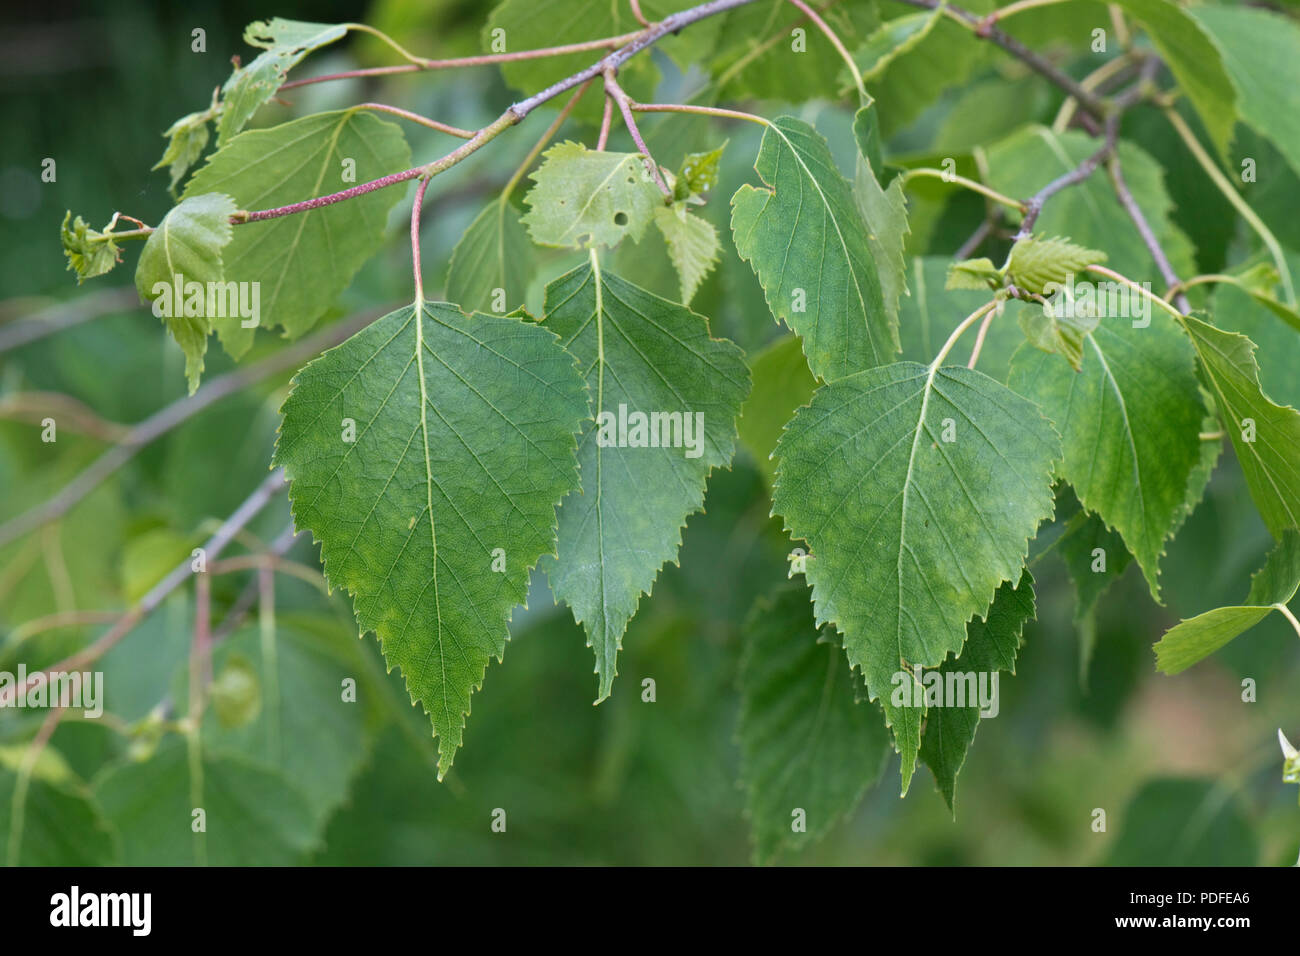 Young leaves of silver birch tree, Betula pendula, in spring, Berkshire, May - Stock Image